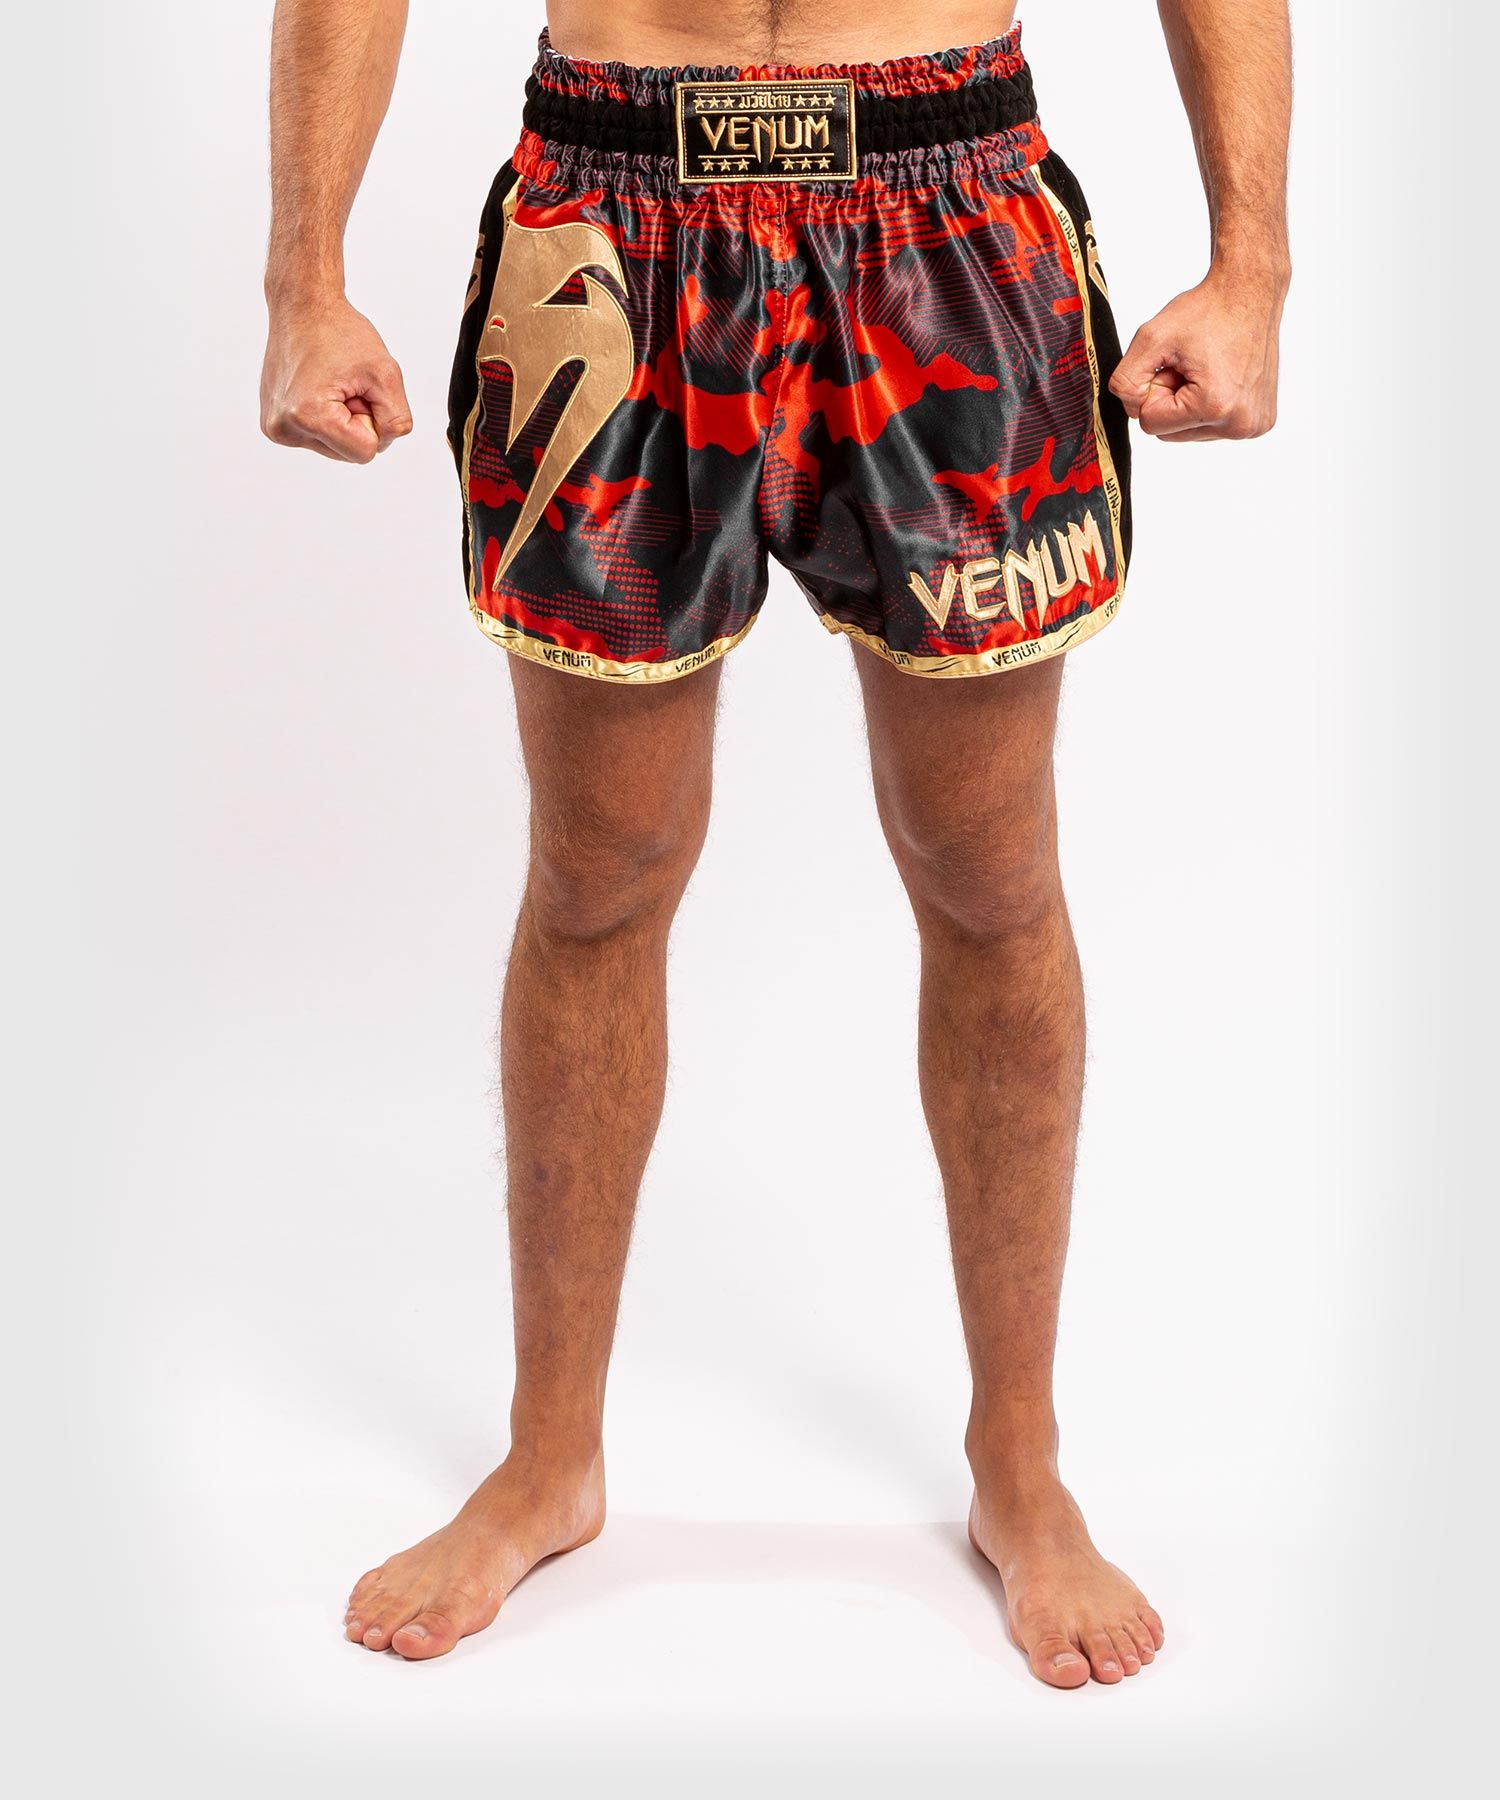 Venum Giant Camo Muay Thai Shorts - Red/Gold